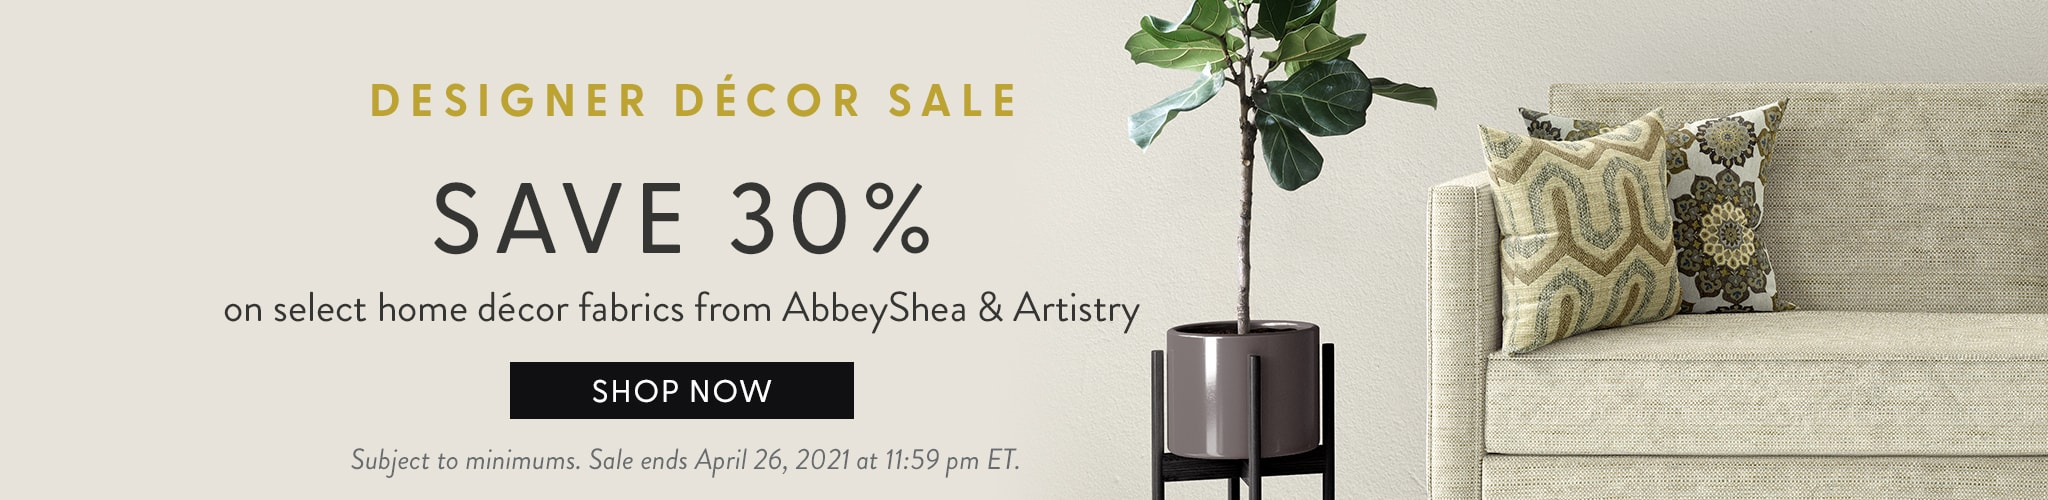 Designer Decor Sale. Save 30% on select home decor fabrics from Abbeyshea and Artistry